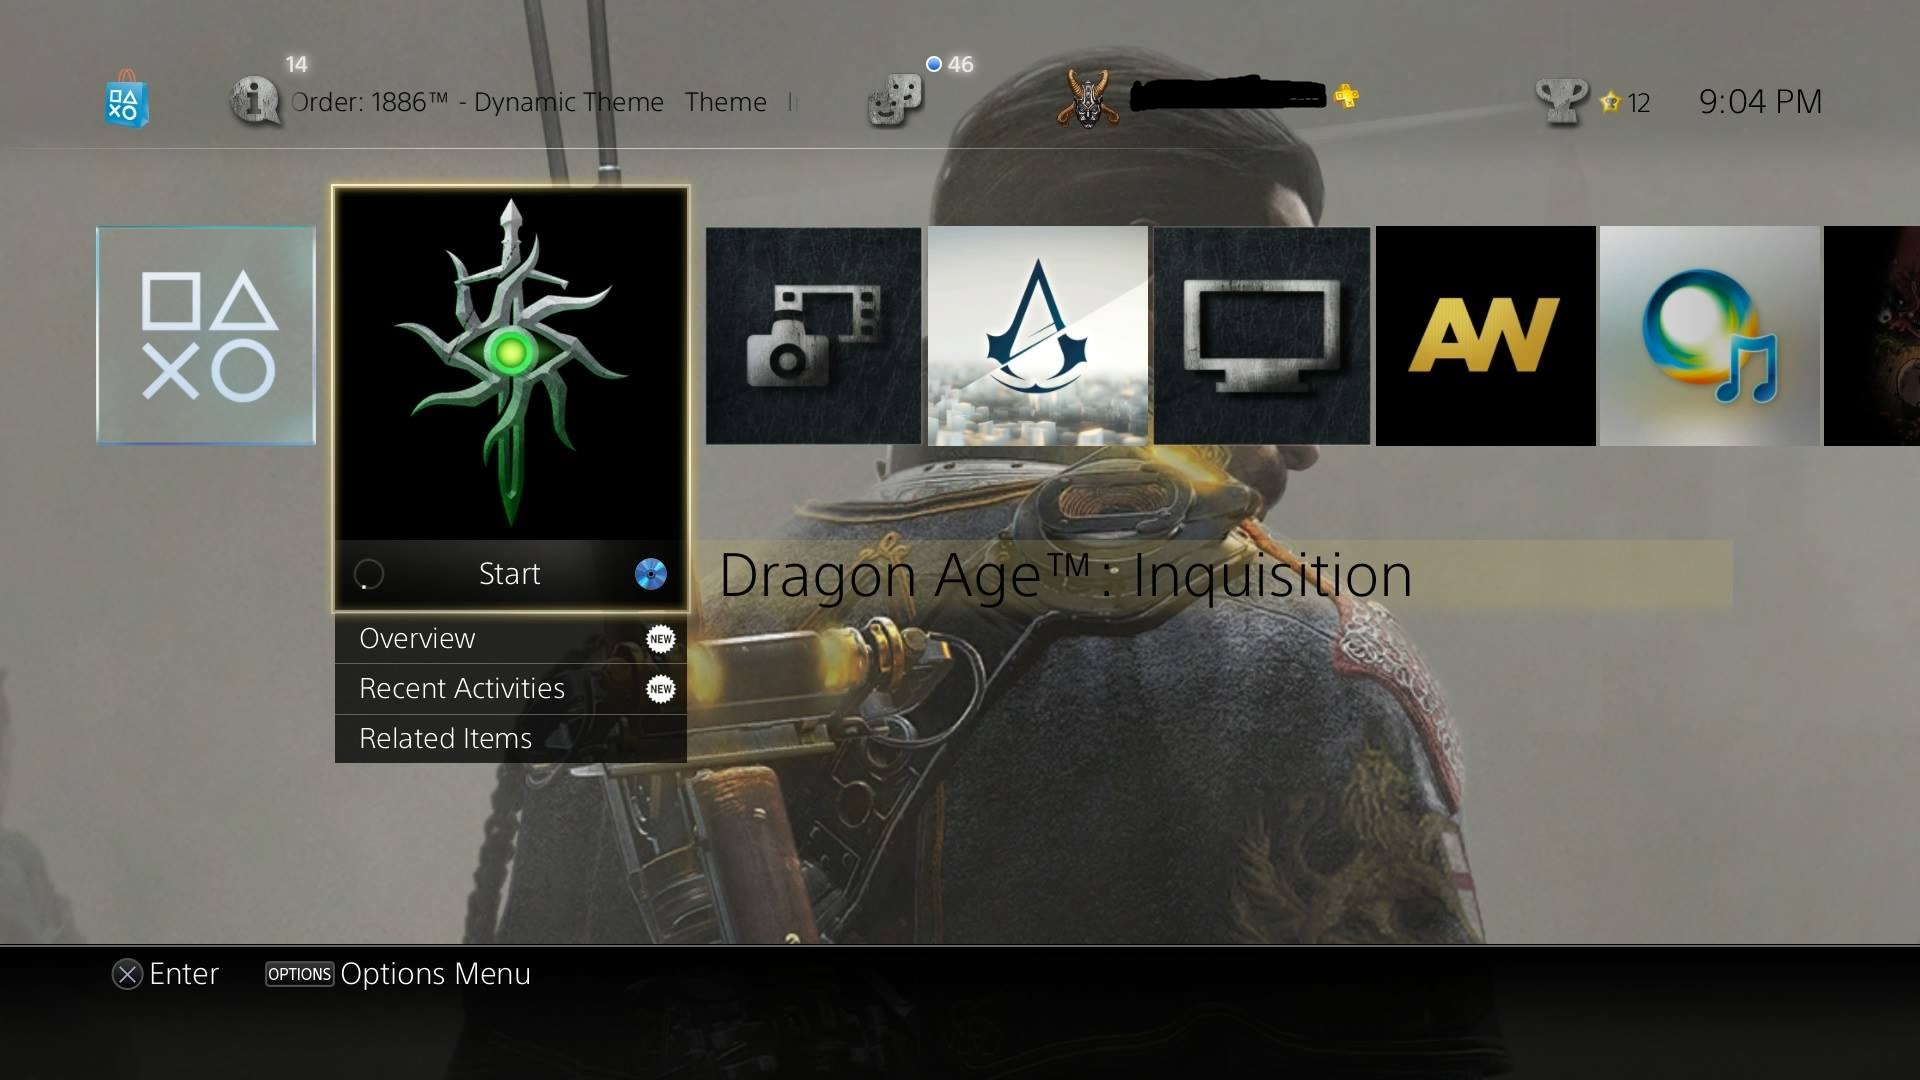 The Order: 1886 PS4 Dynamic Theme Looks Stunning, First